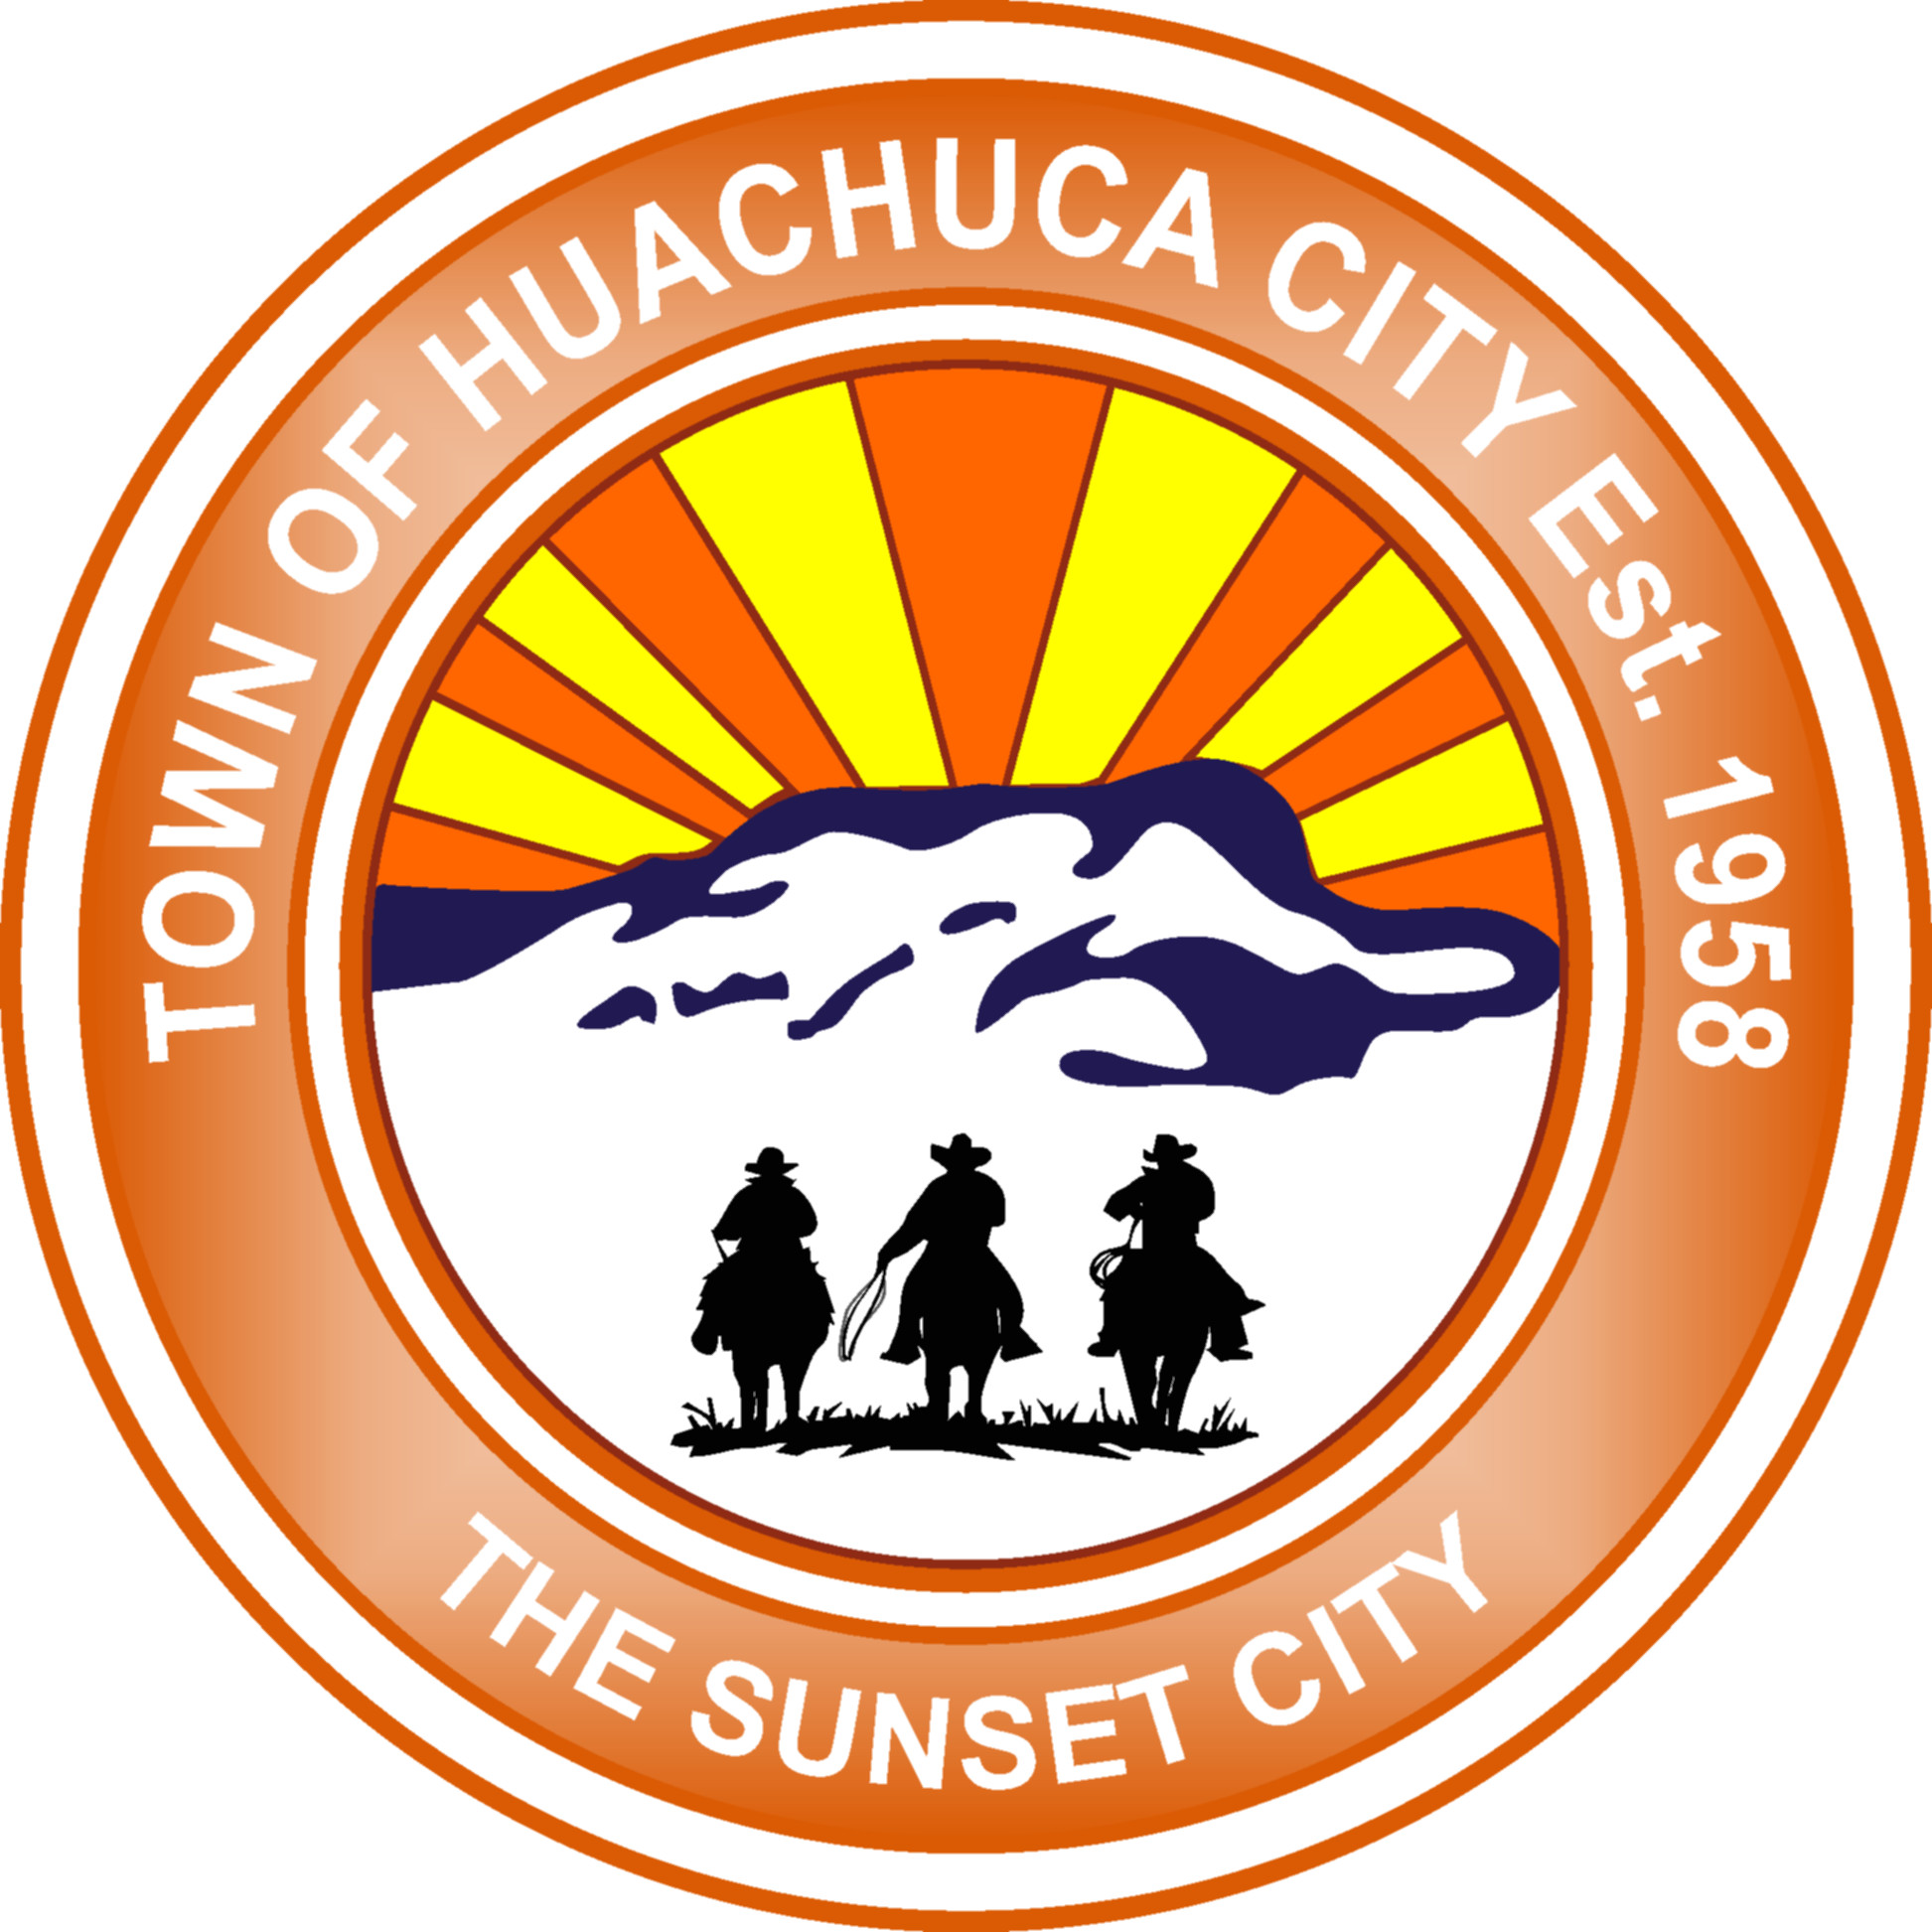 Home - Town of Huachuca City